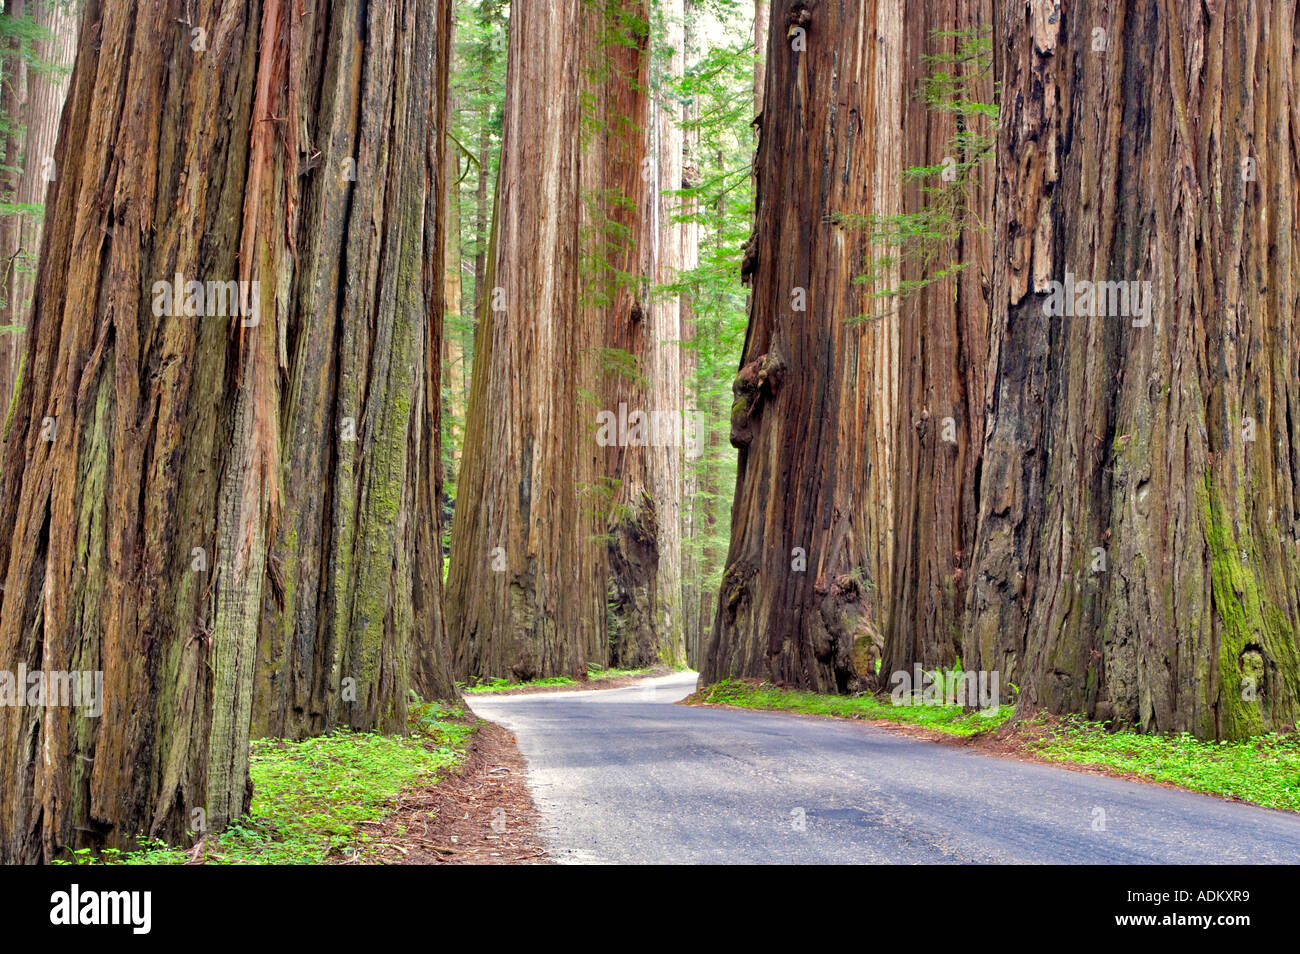 Road through Humbolt Redwoods State Park with redwoods California - Stock Image